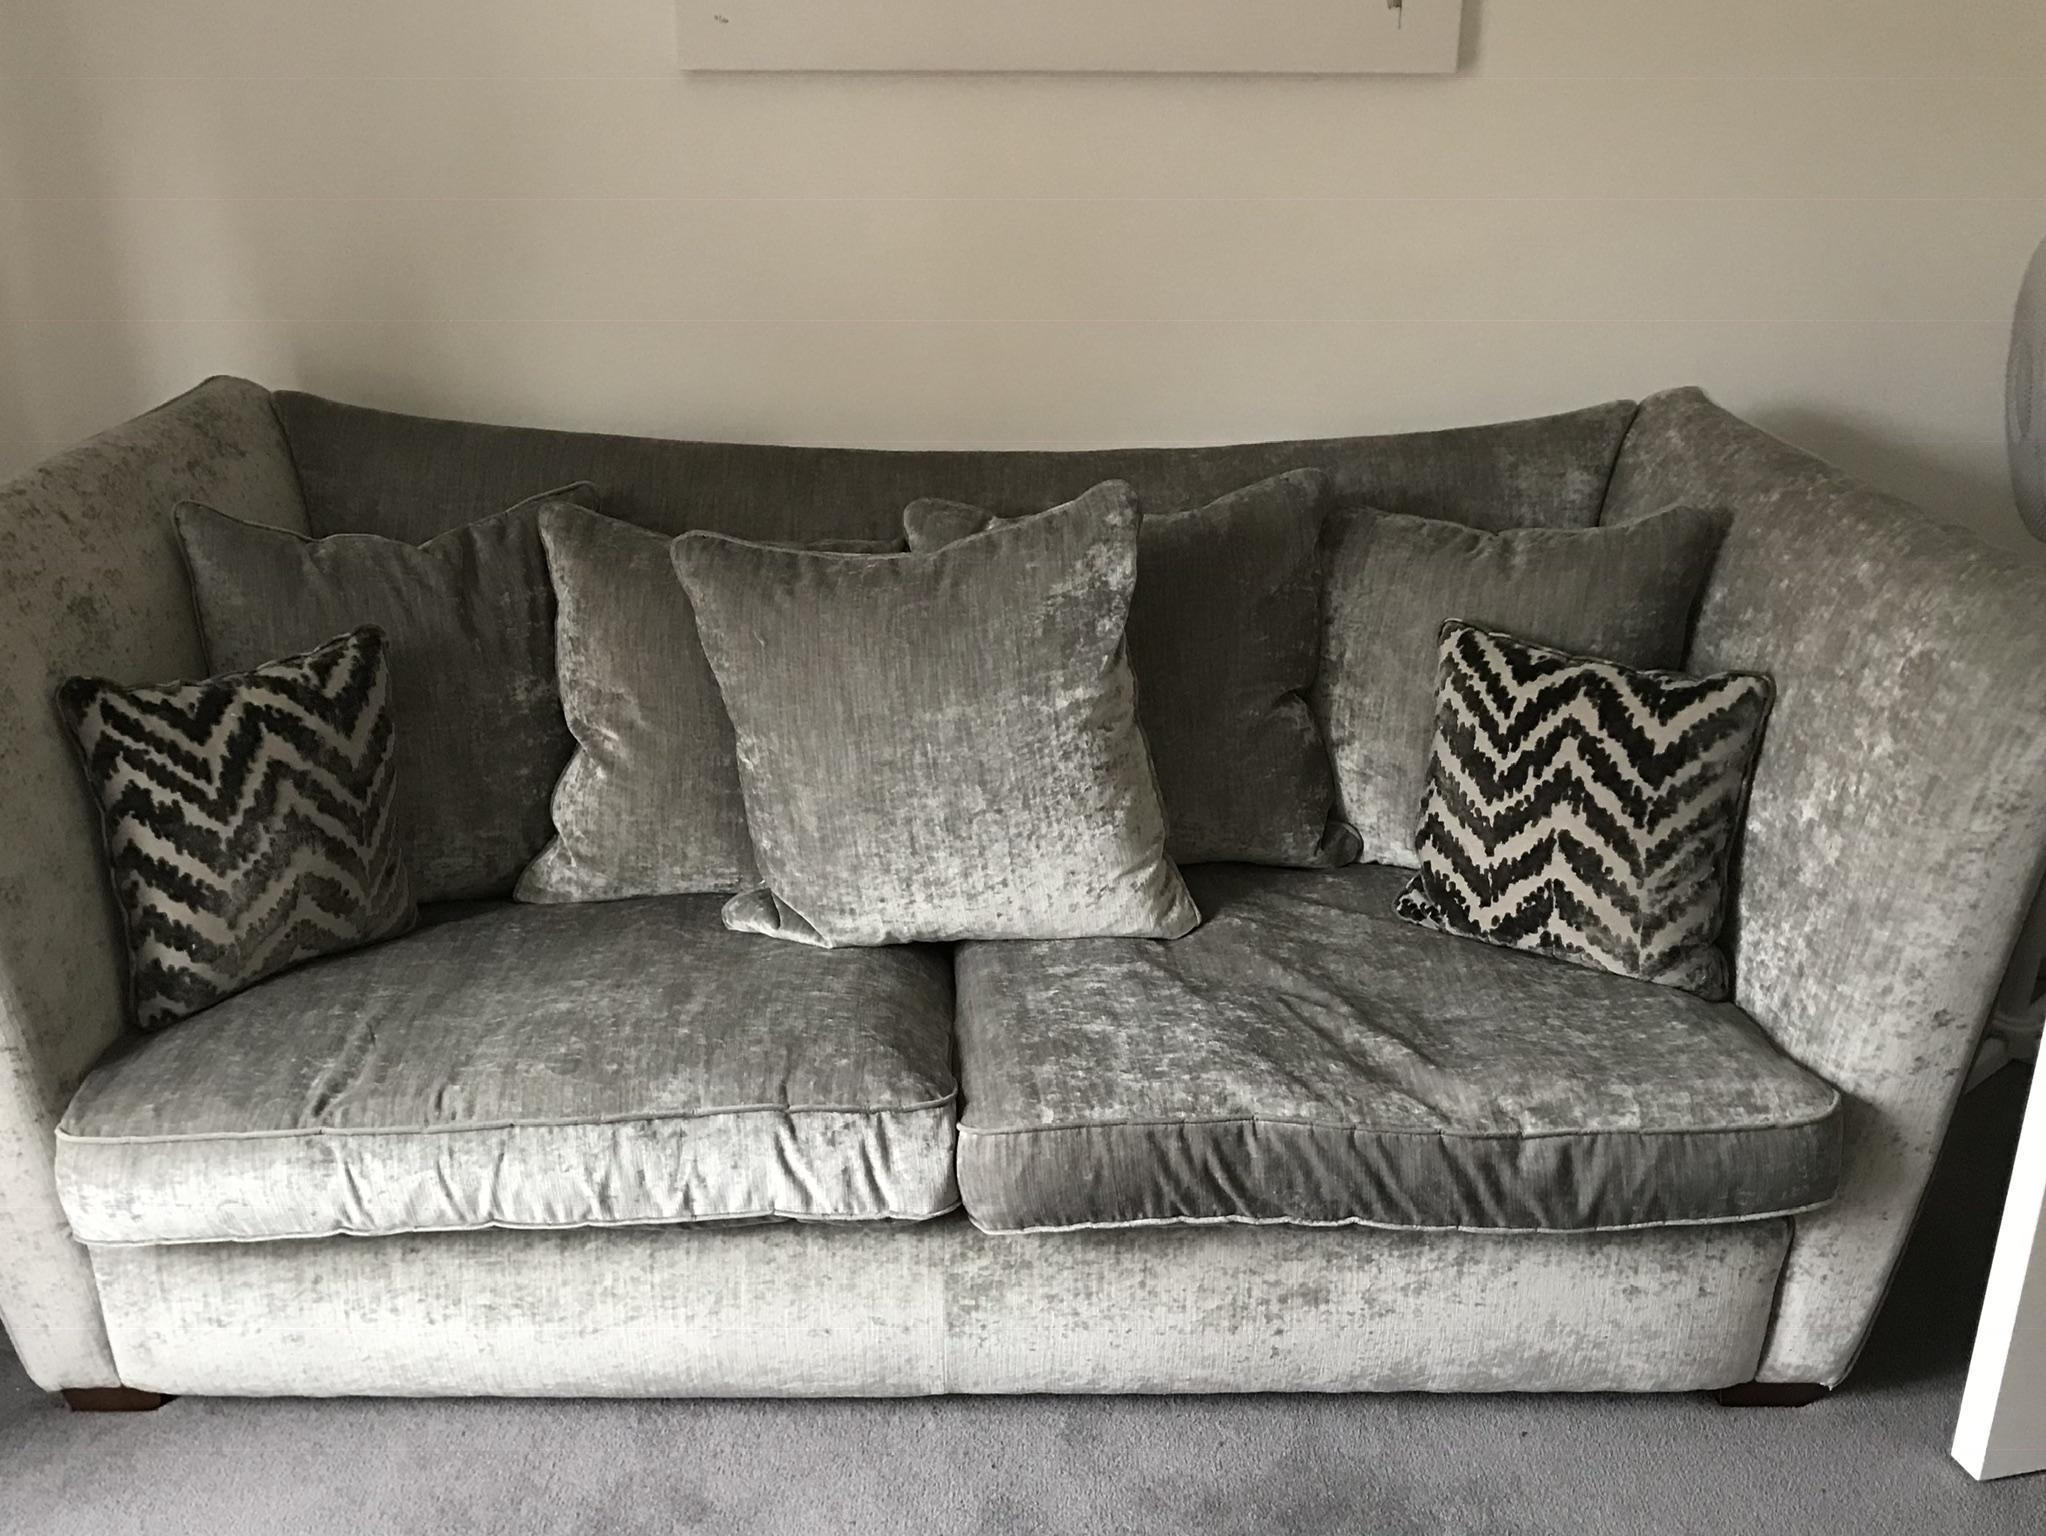 Sofology Sale Sofology Sofa In Reading Expired Friday Ad